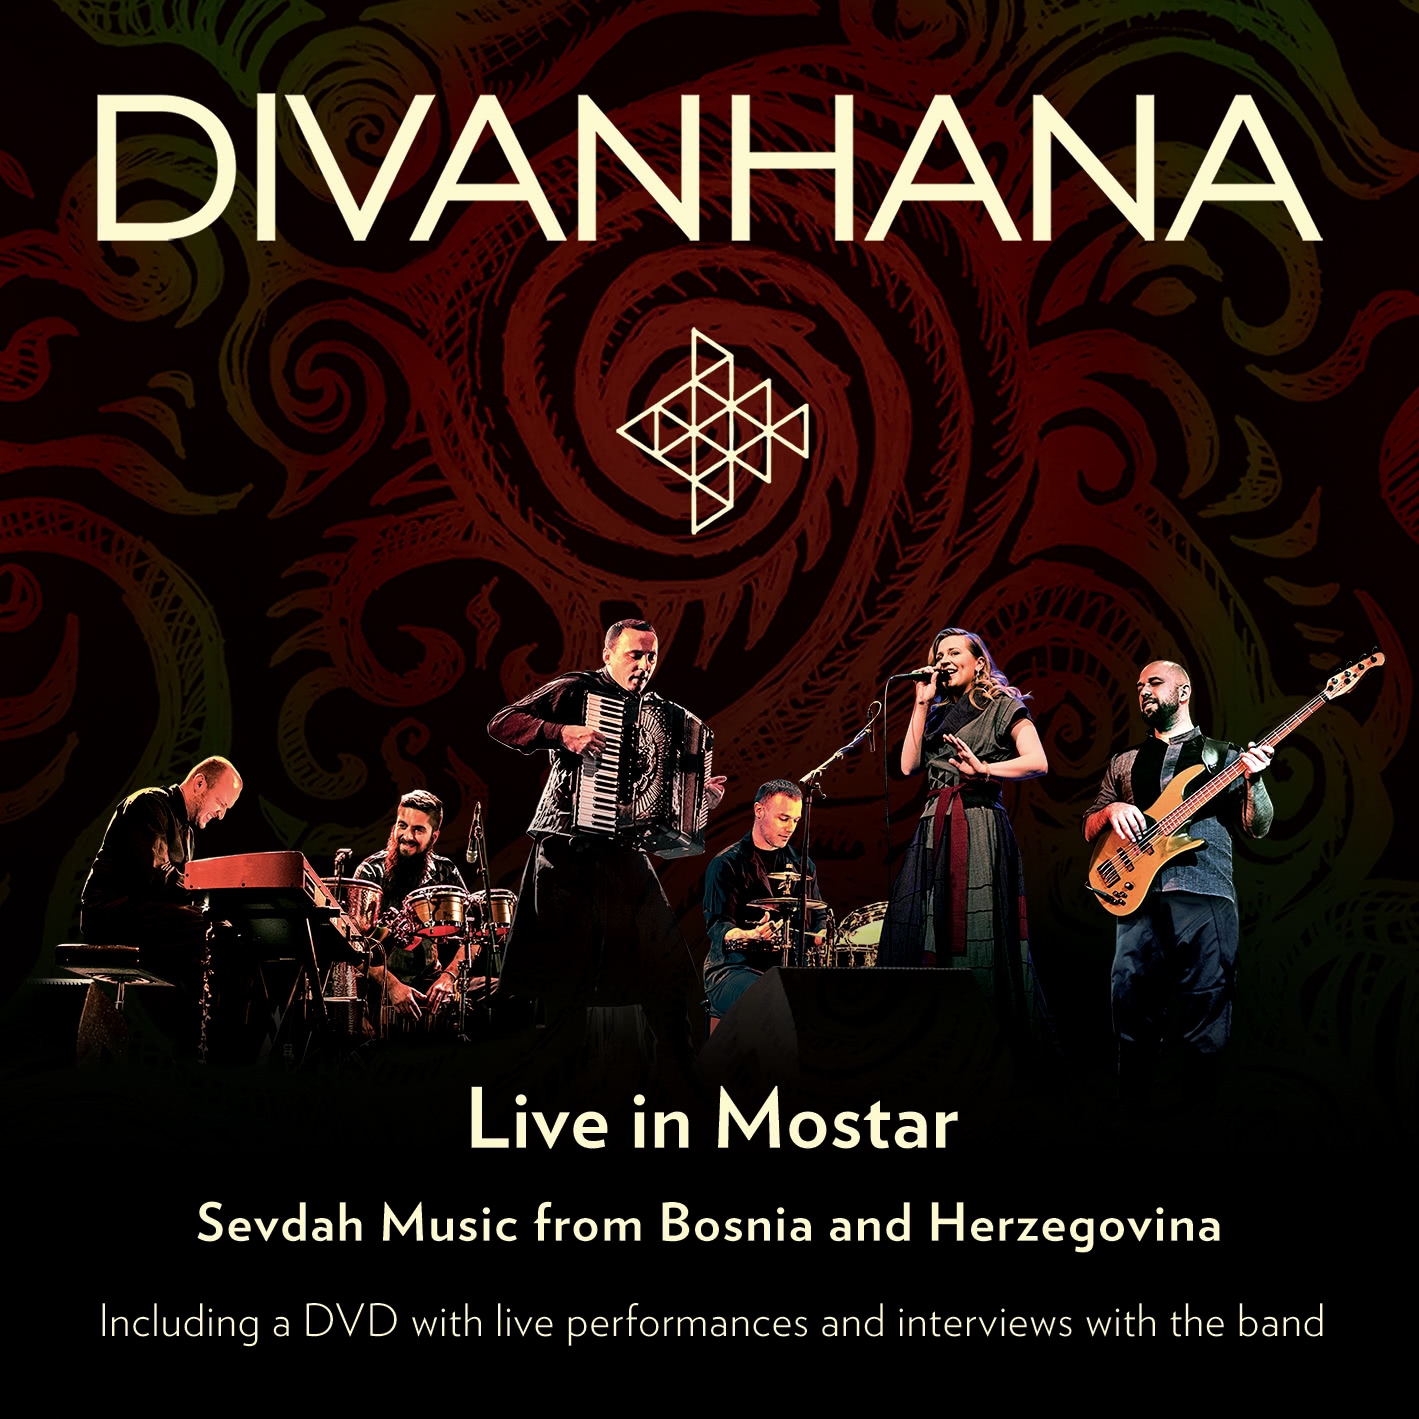 EUCD2722 Divanhana Live in Mostar - Sevdah Music from Bosnia and Herzegovina